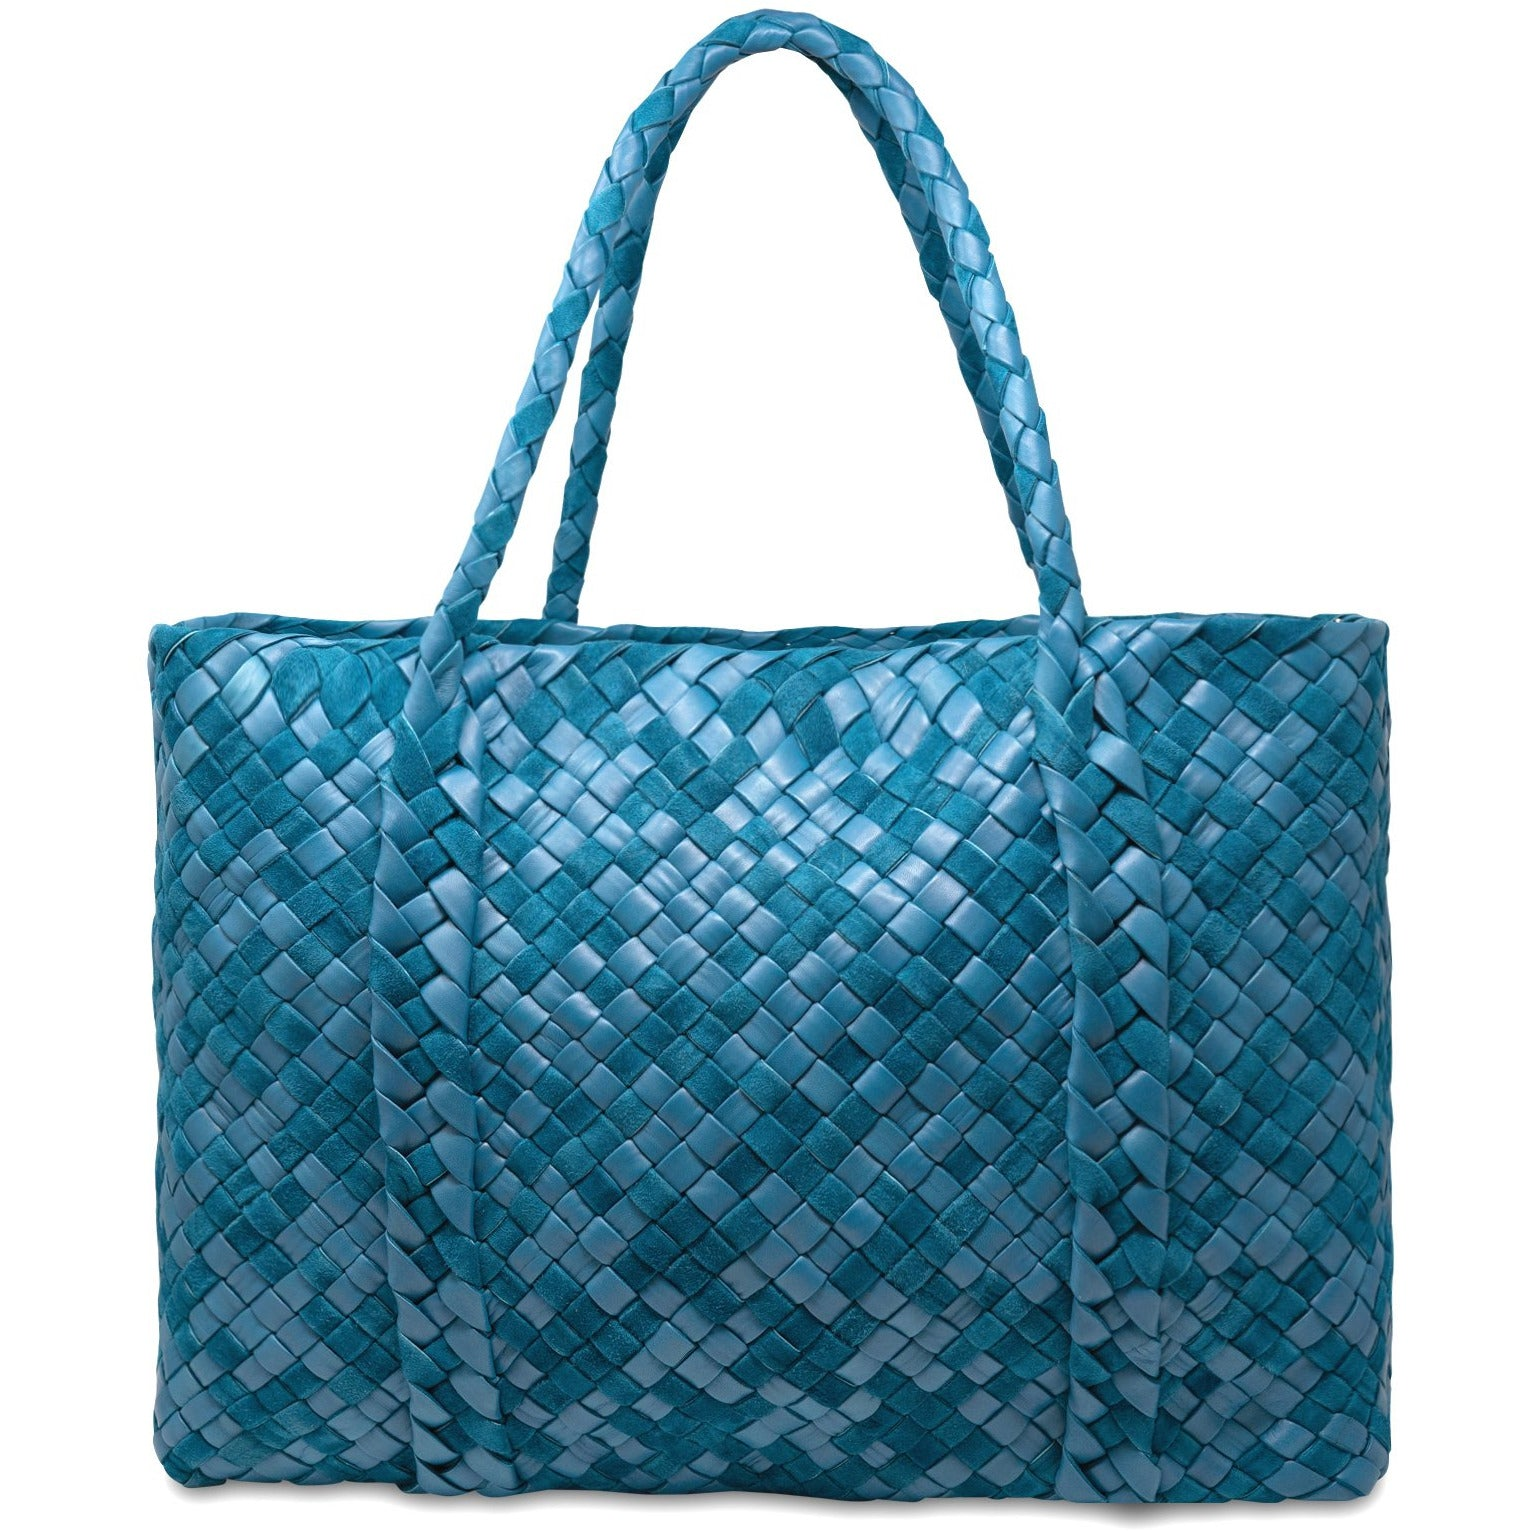 Infinity Intrecciato Leather Large Tote Bag - New Spring Summer 2020 Collection JT814